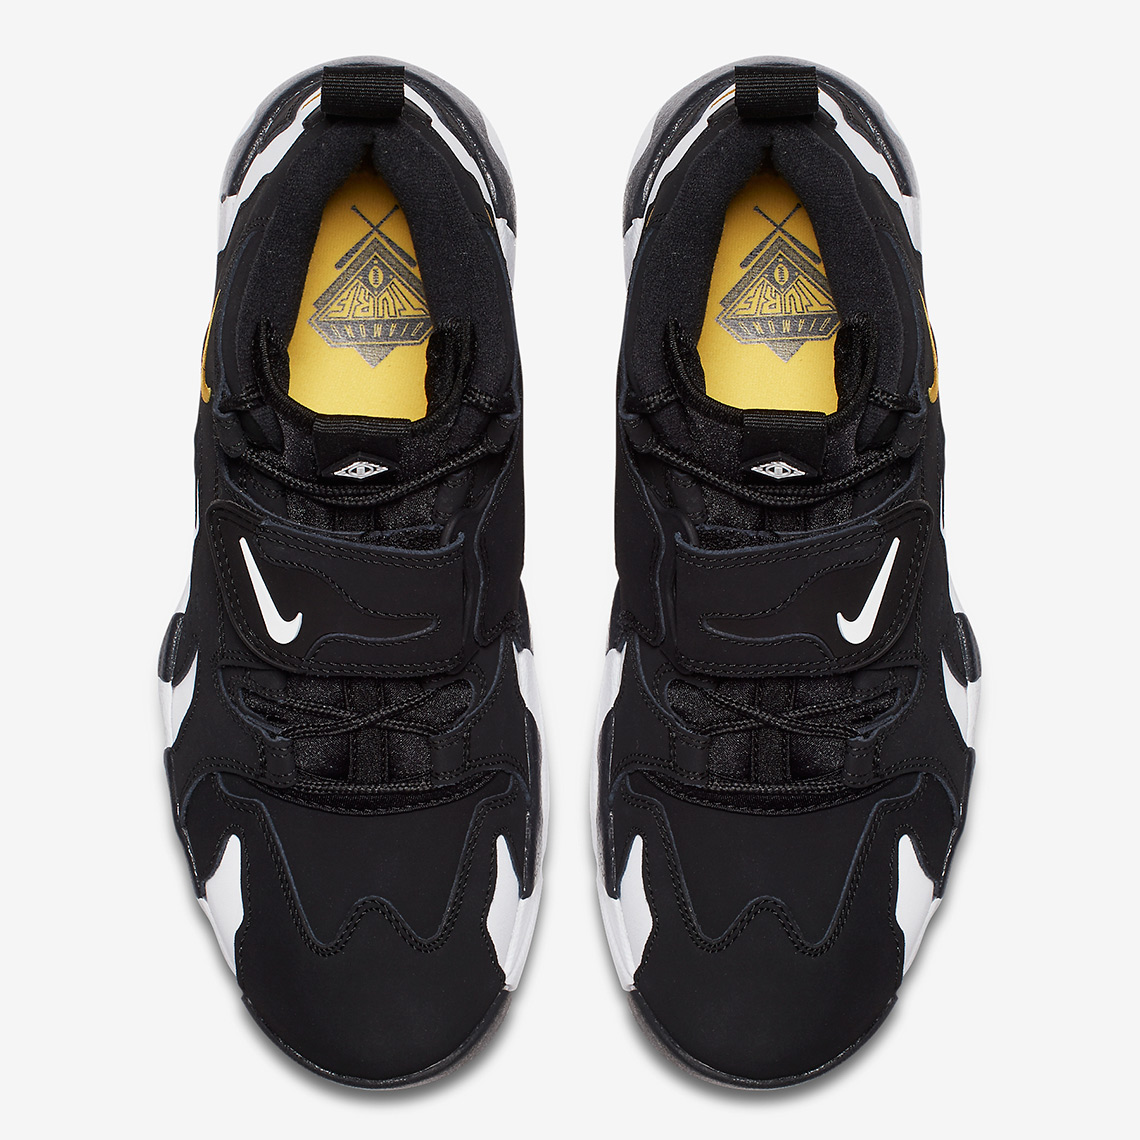 b0a7b31983 Nike Air DT Max '96. Color: Black/Varsity Maize-White Style Code:  316408-003. Advertisement. Advertisement